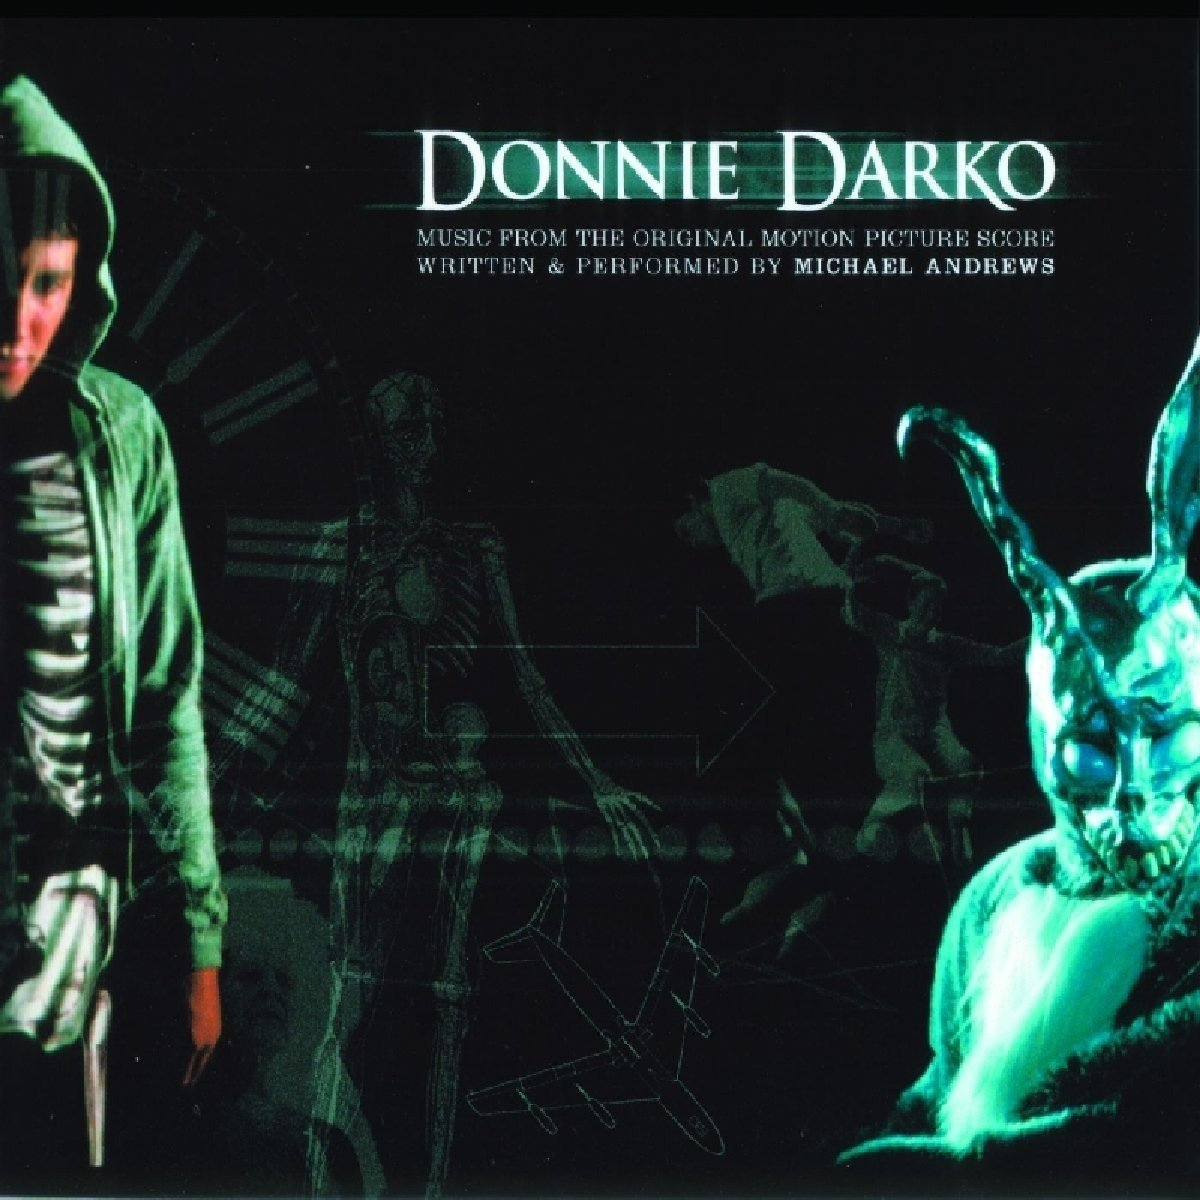 donnie darko score co uk music